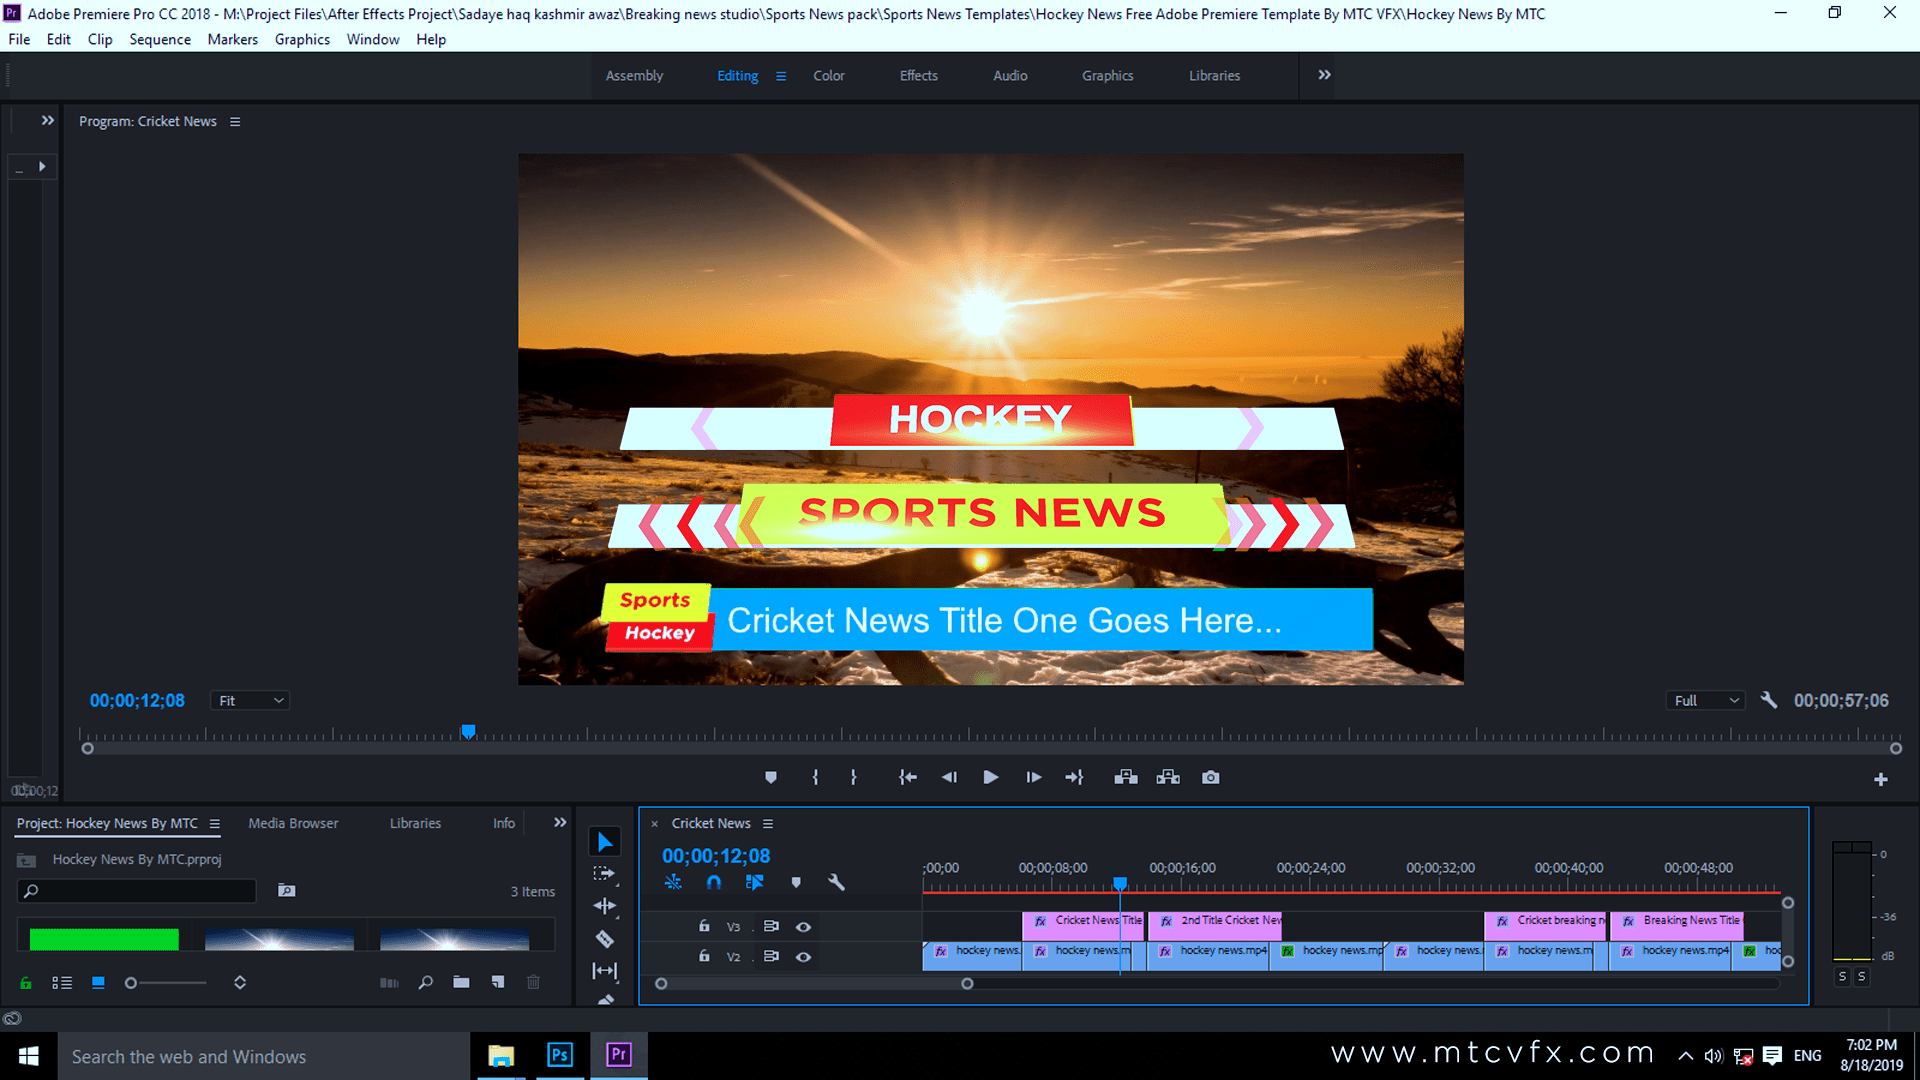 Hockey News Lower Thirds Free Adobe Premiere Template By MTC Tutorials